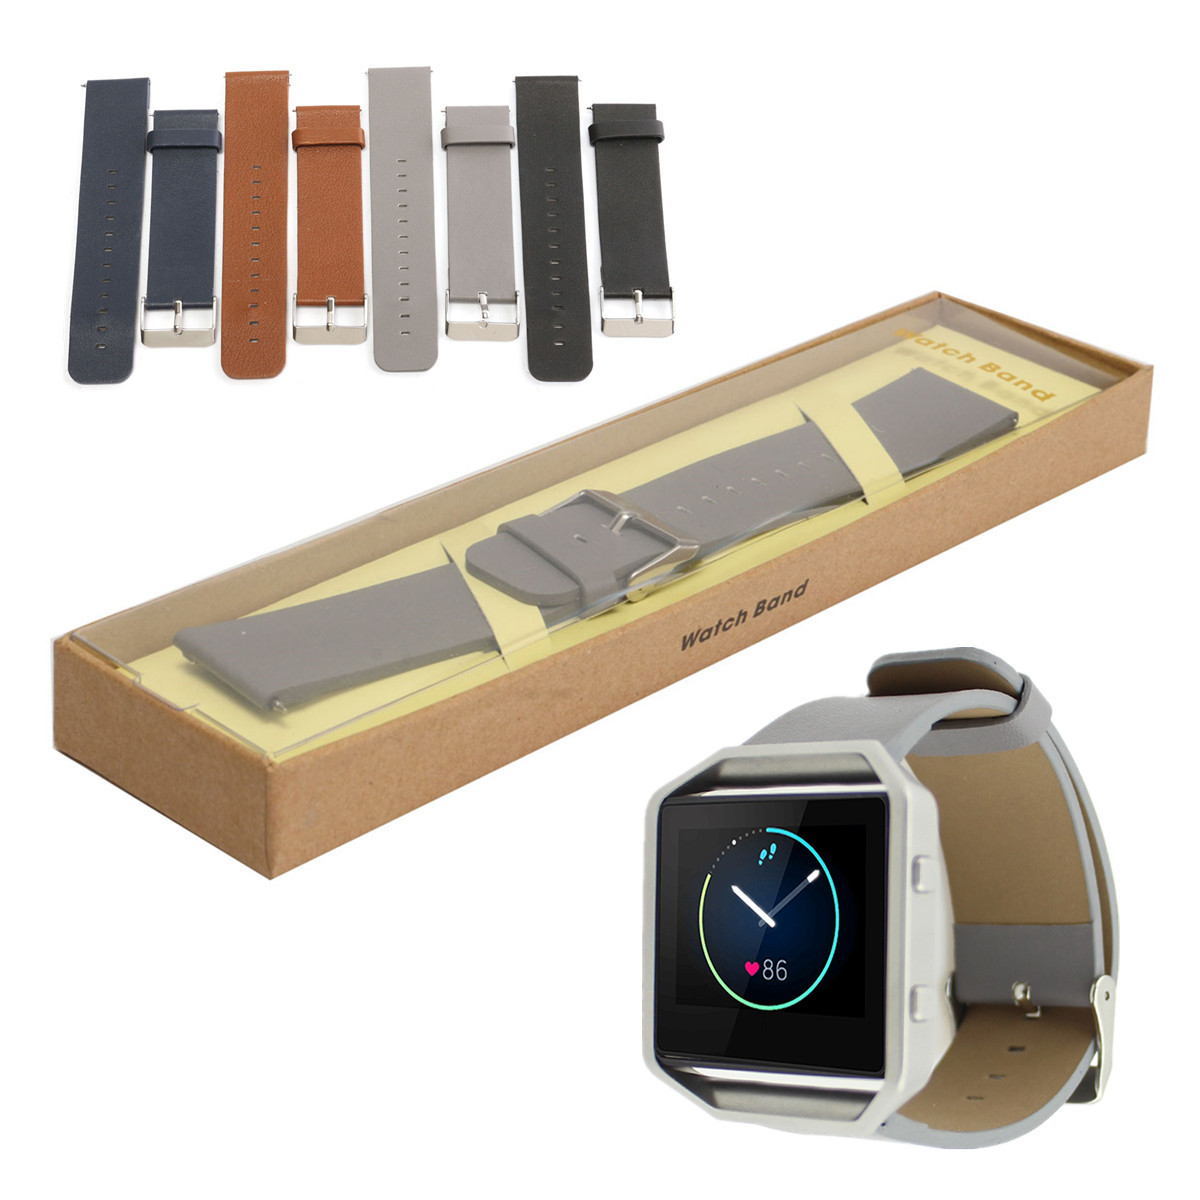 PU Leather Watch Band WrisT-strap Watch Band With Pins For Fitbit Blaze Tracker